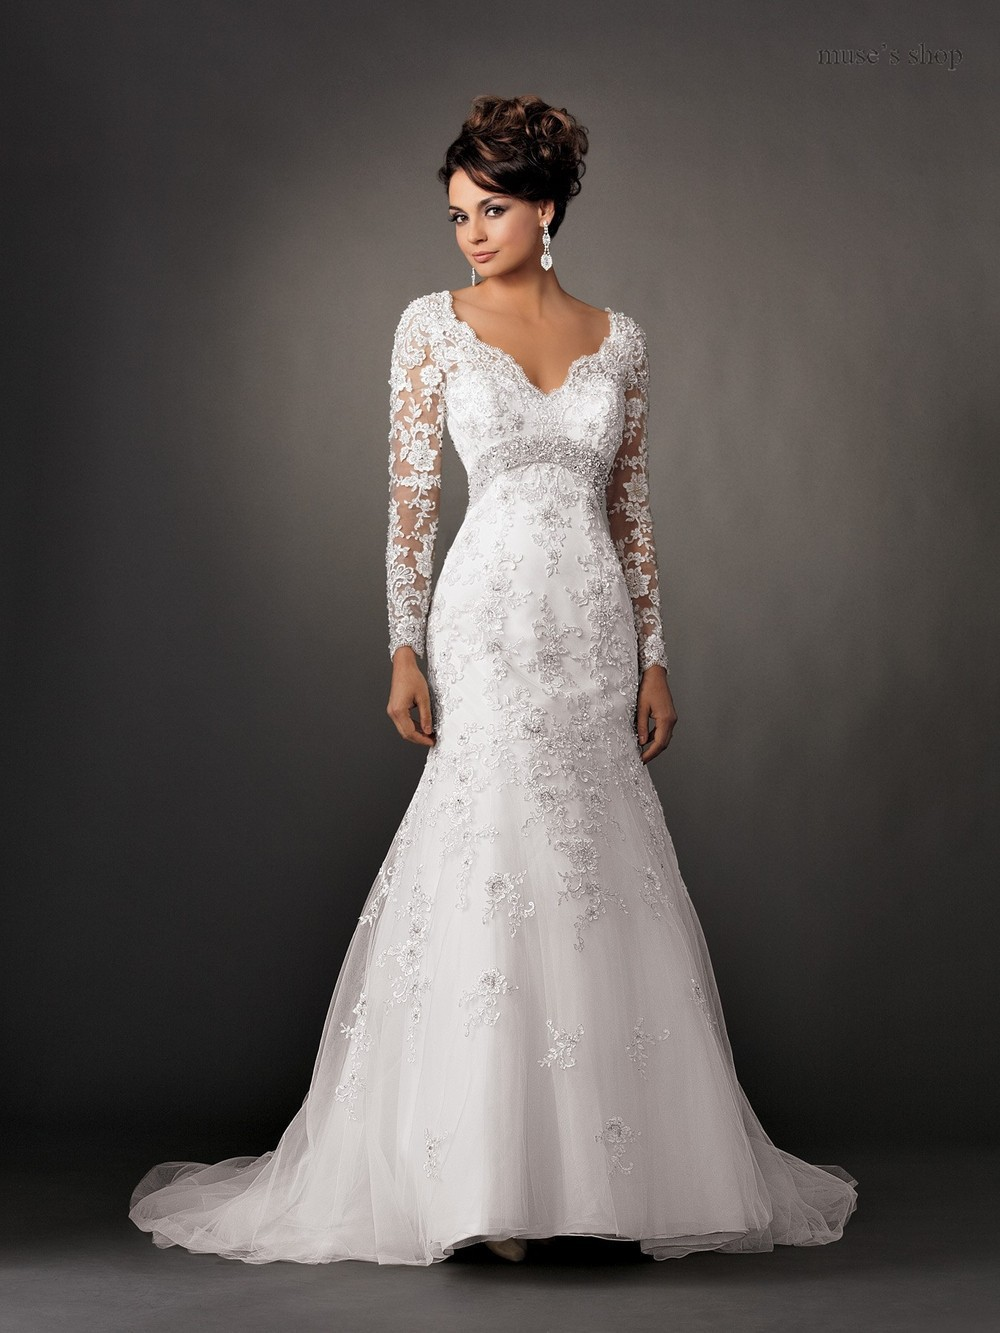 V neck vintage long sleeve lace wedding dresses backless for Lace sleeve backless wedding dress